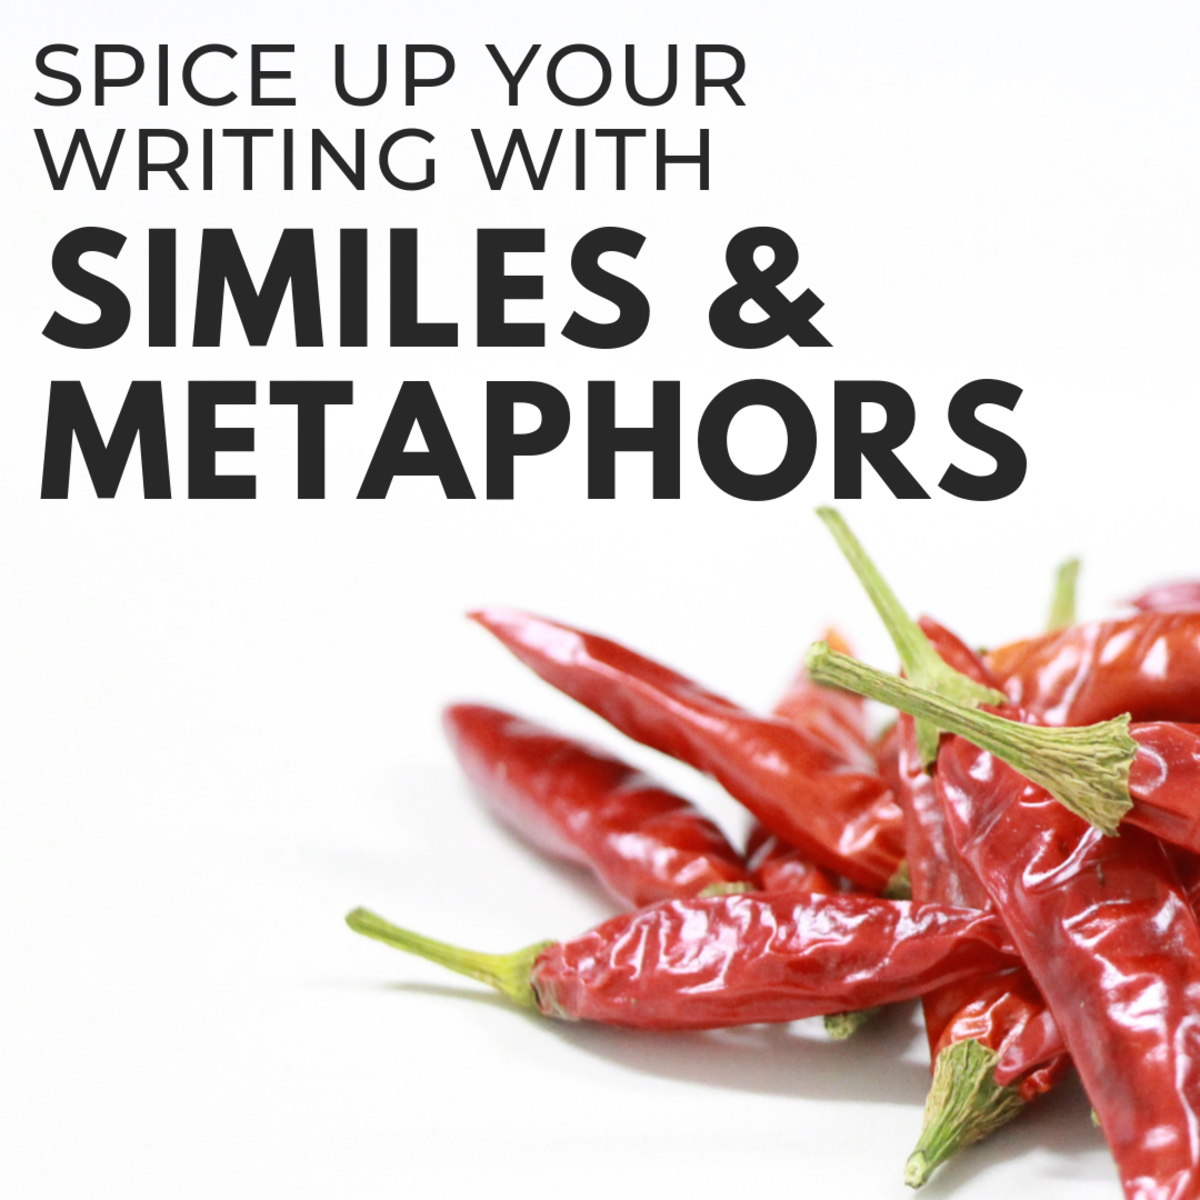 How to Spice Up Your Writing With Similes and Metaphors